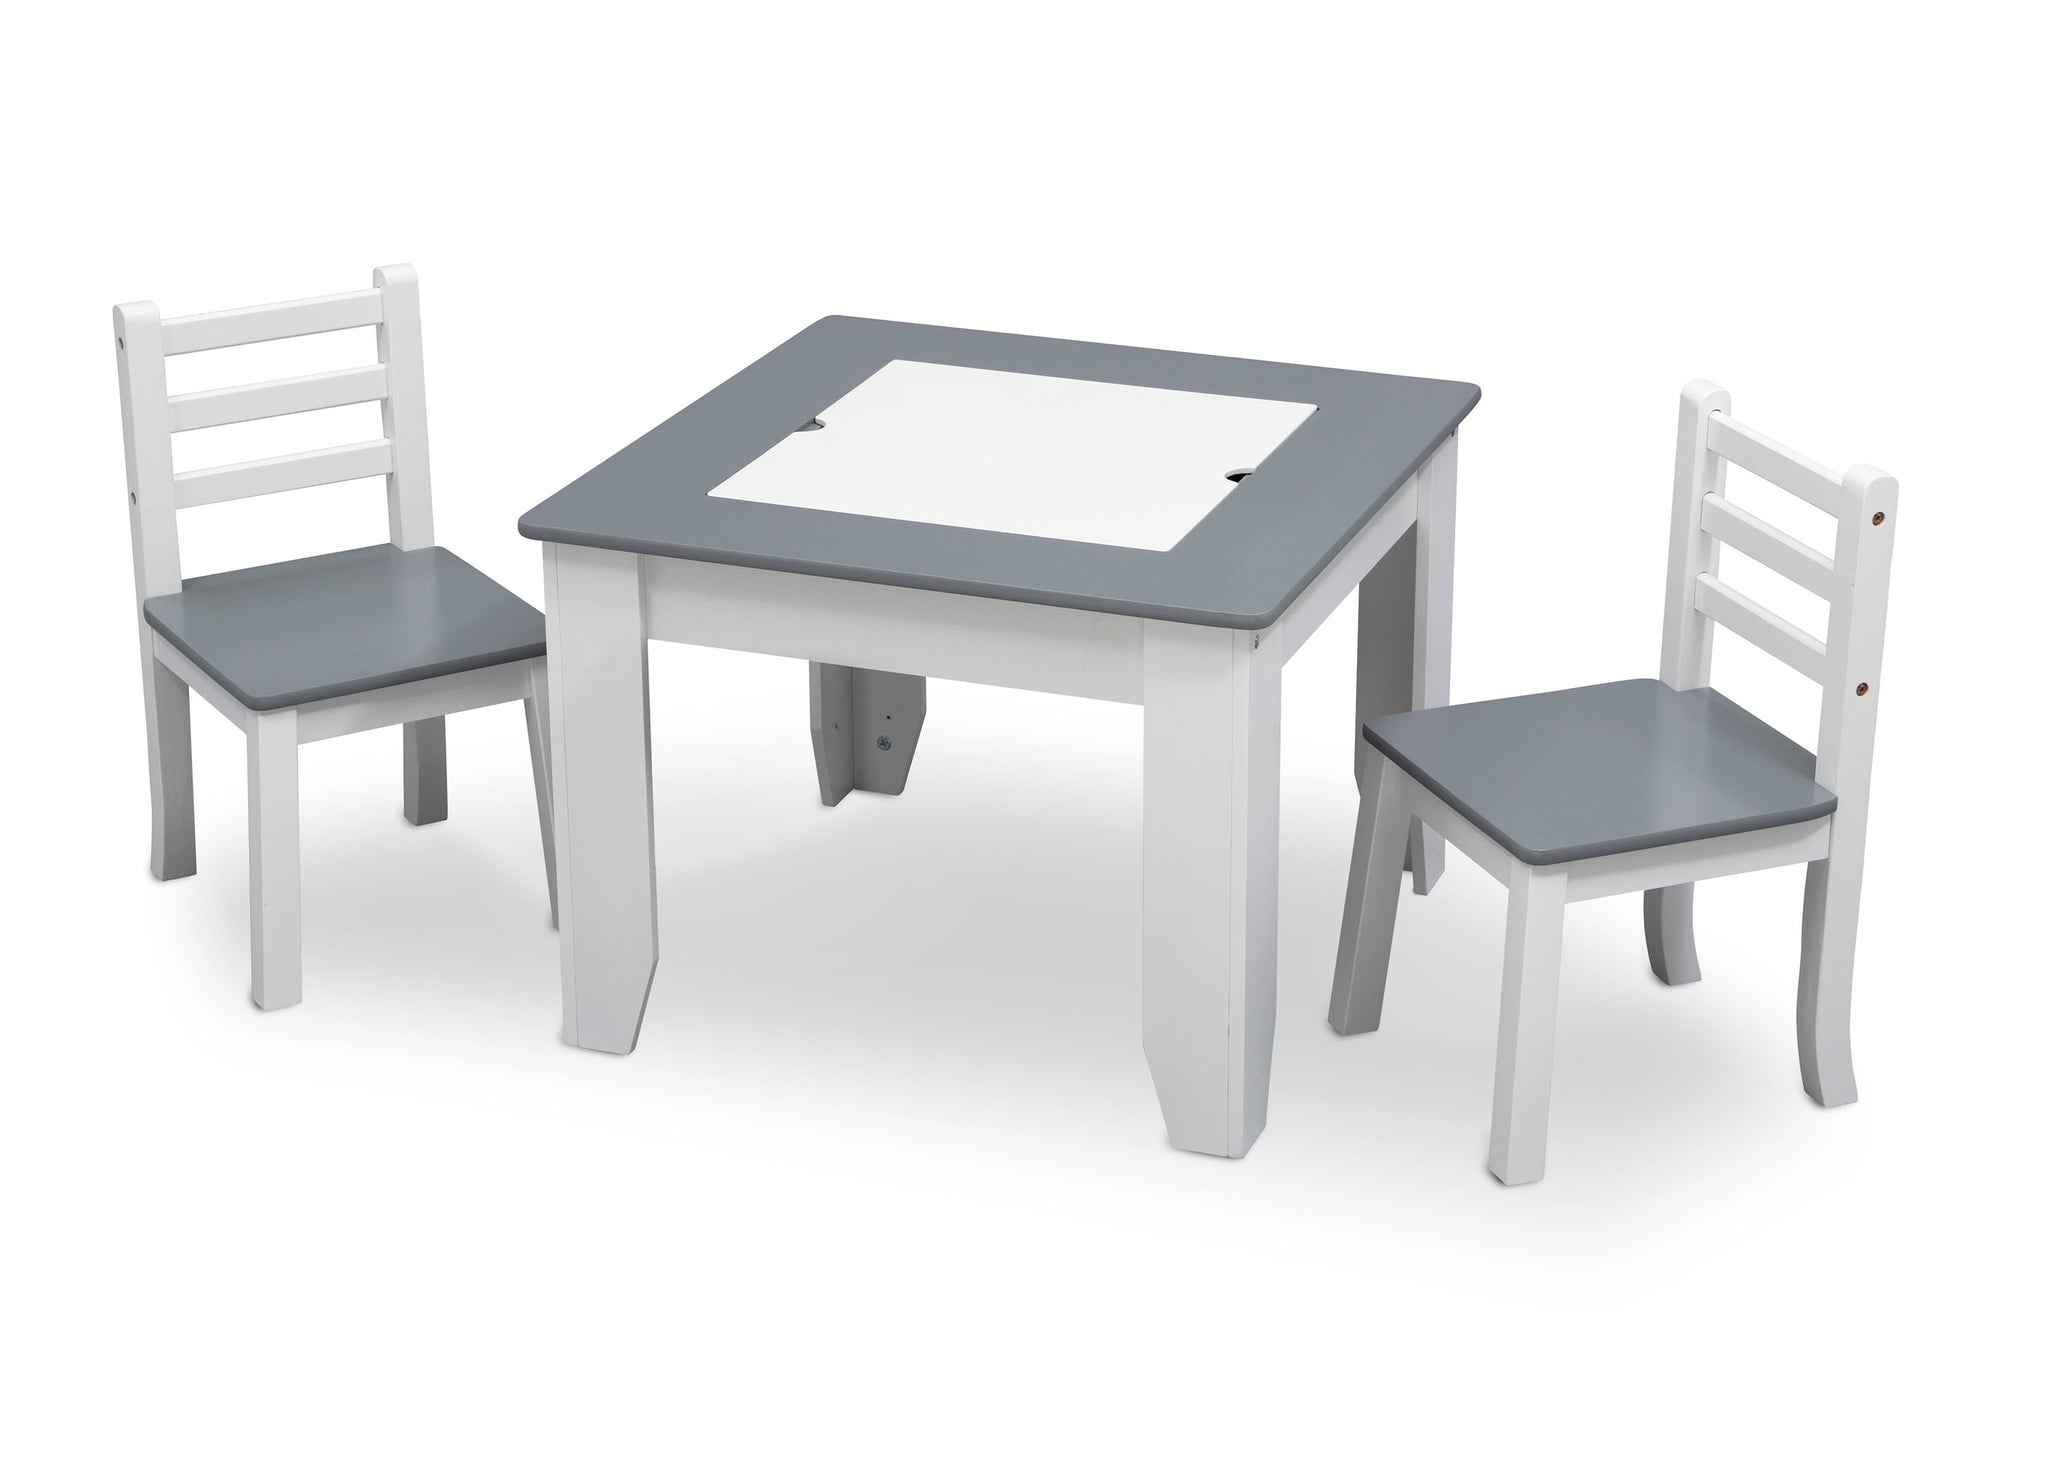 Delta Children Light Grey and White (1176) Chelsea Chair Set with Table Left View Dry Erase Board a2a